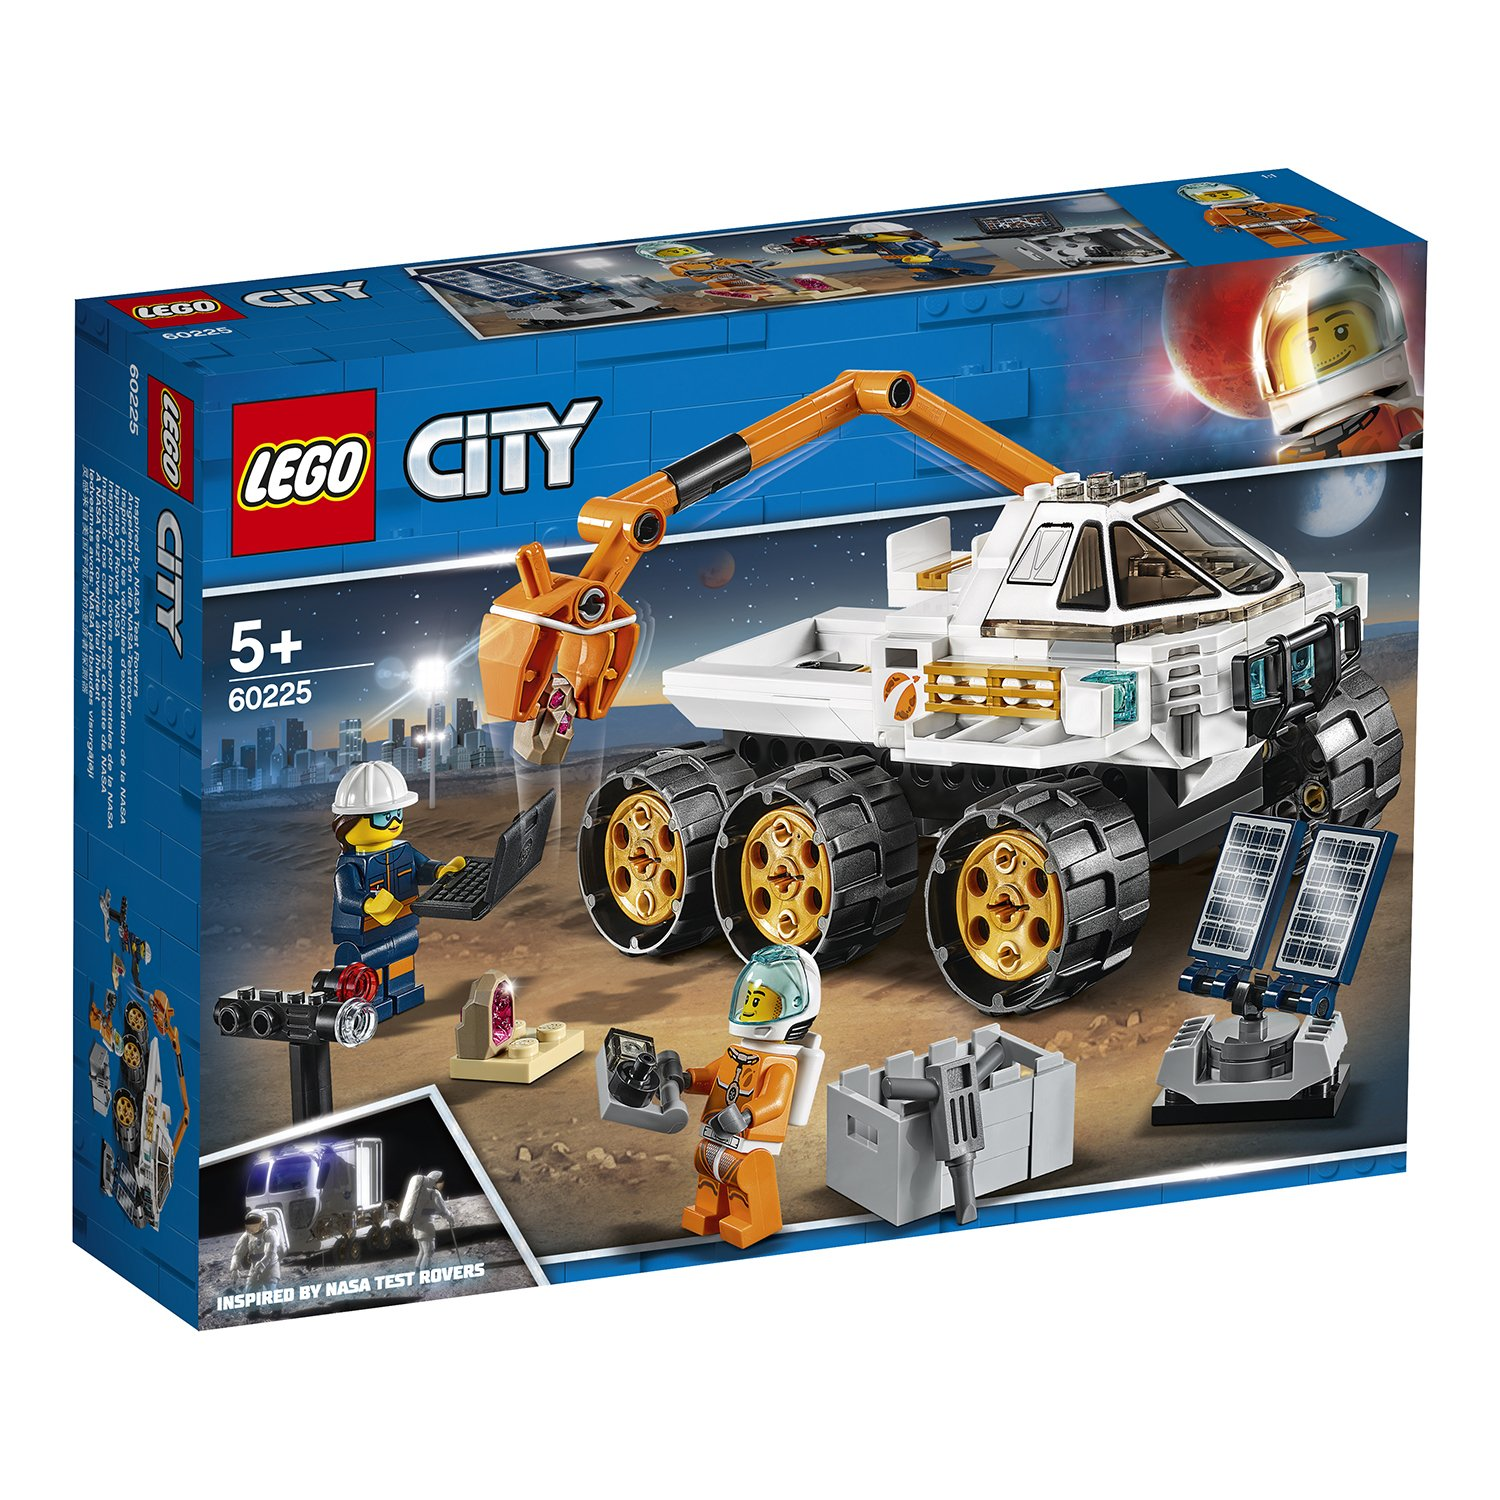 LEGO樂高積木 City Space Port系列 60225 太空基地探測車